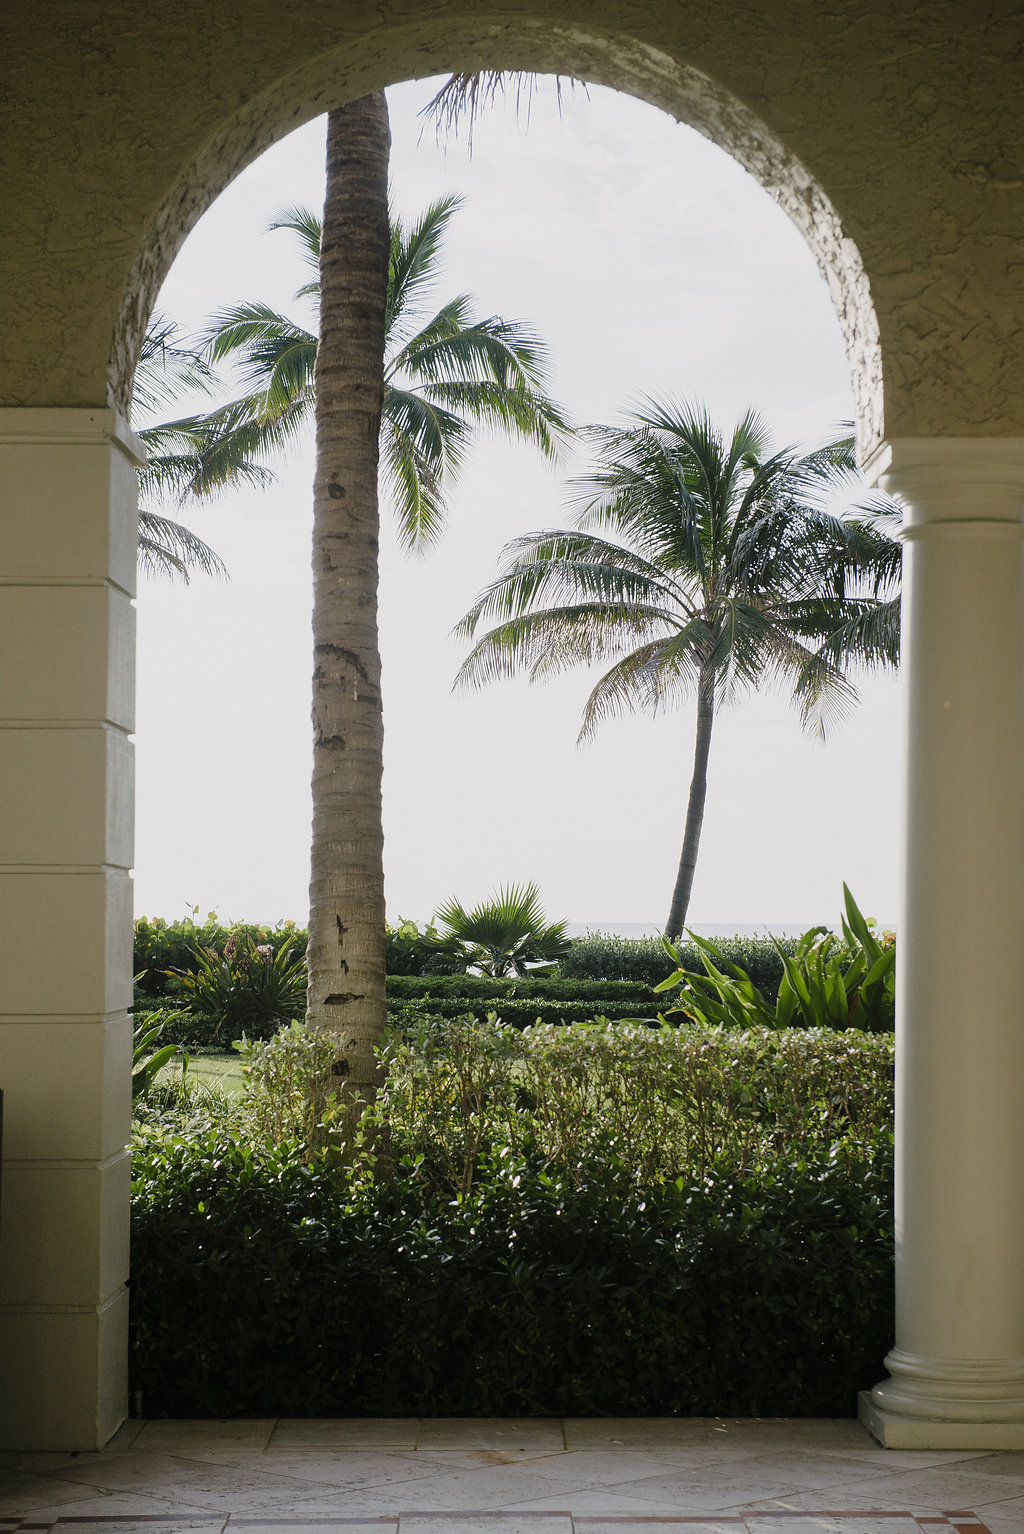 Photo of palm trees through an archway